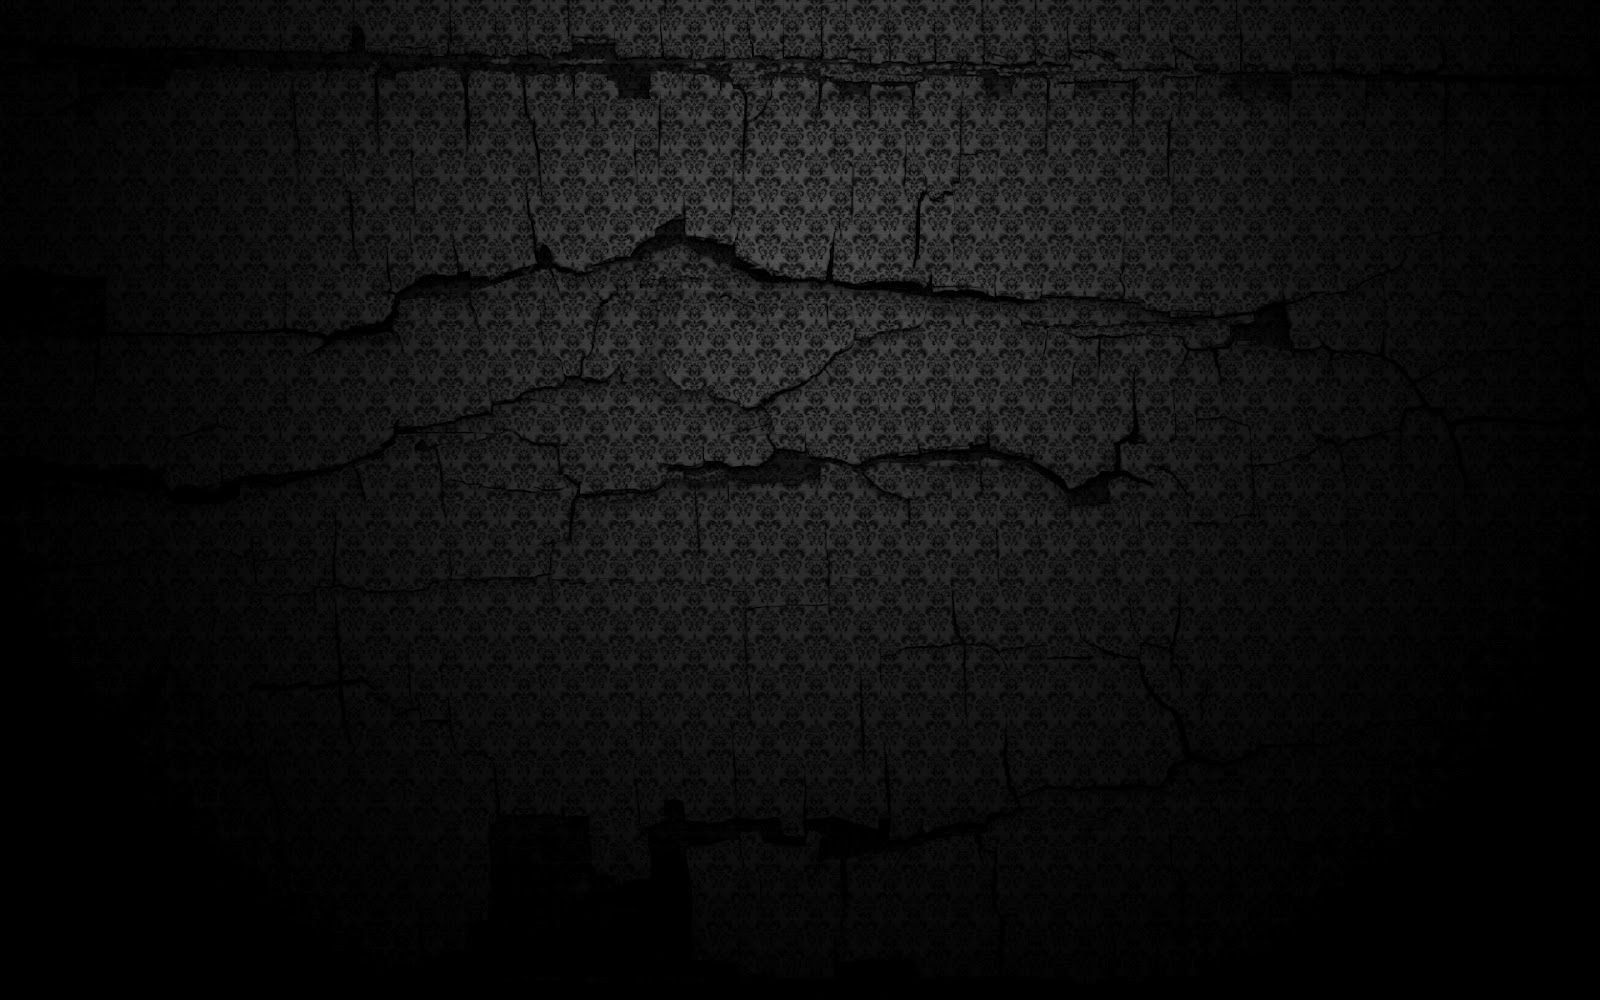 wallpapers hd iphone 5 black